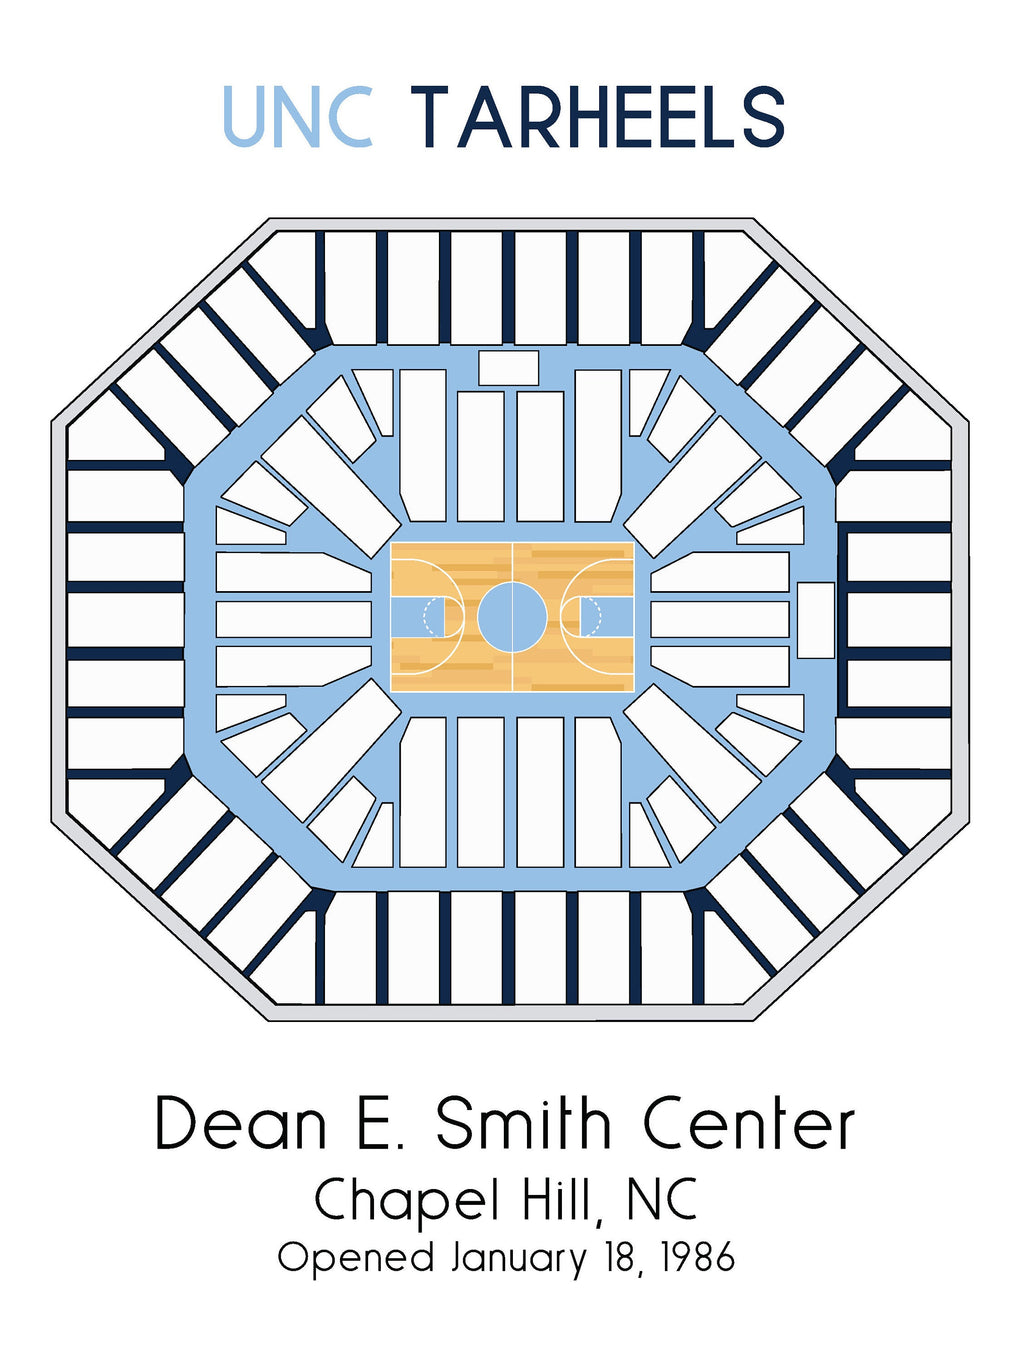 Dean Dome, UNC, dean e smith center, UNC Tarheels, Chapel Hill, Tarheels, ACC Basketball, Basketball, Carolina Tarheels, Smith Center